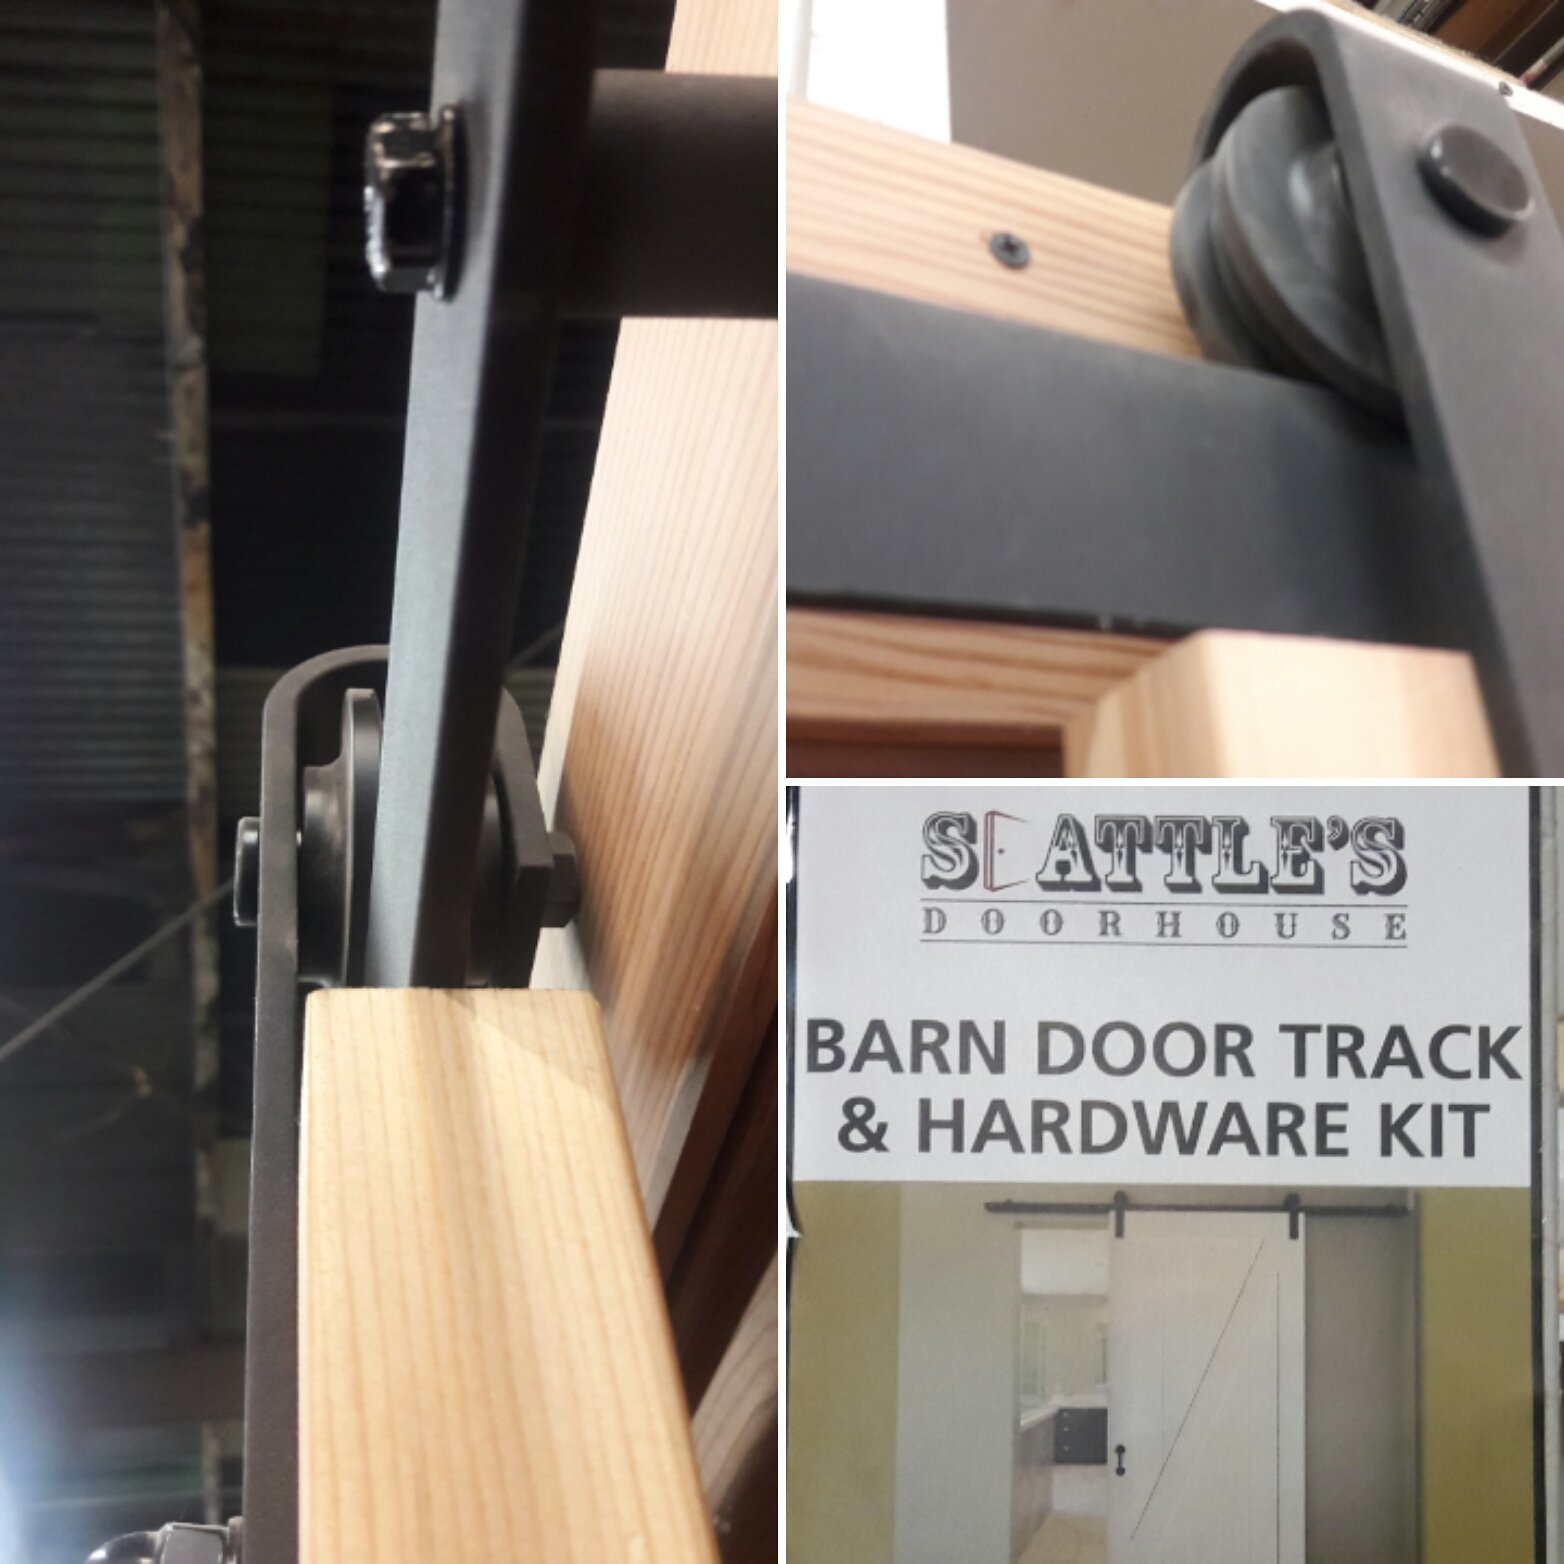 Barn Door Track and Hardware